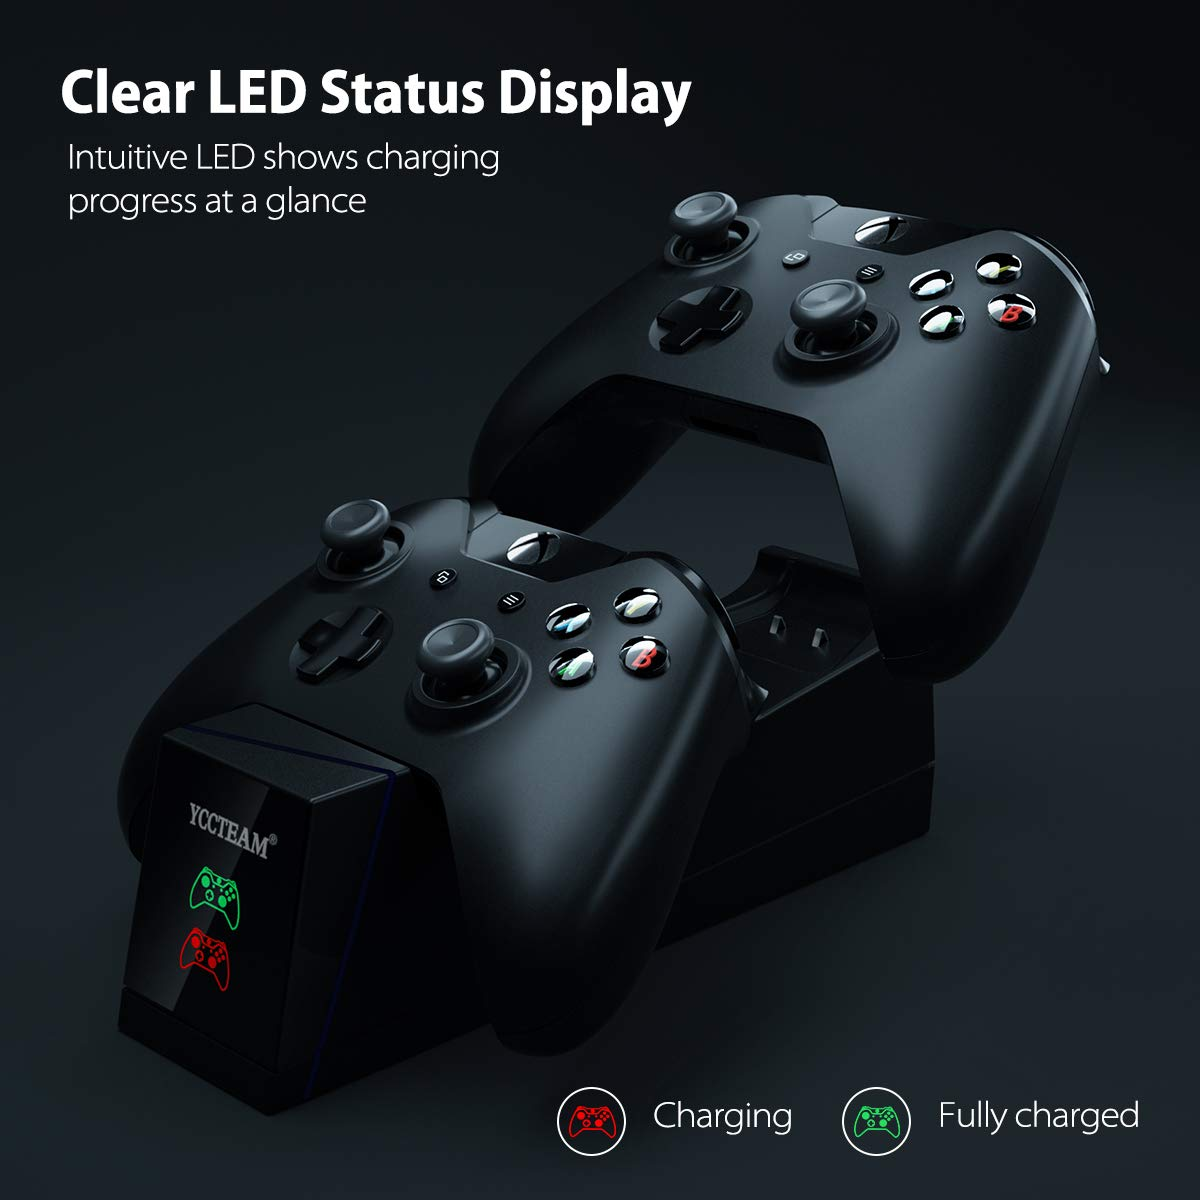 VGAME Xbox One Controller Charger Station with Rechargeable Battery Packs - Dual Slot Charging Base Dock & 2 Pack Replacement Batteries Accessories for Xbox ONE S/X Elite